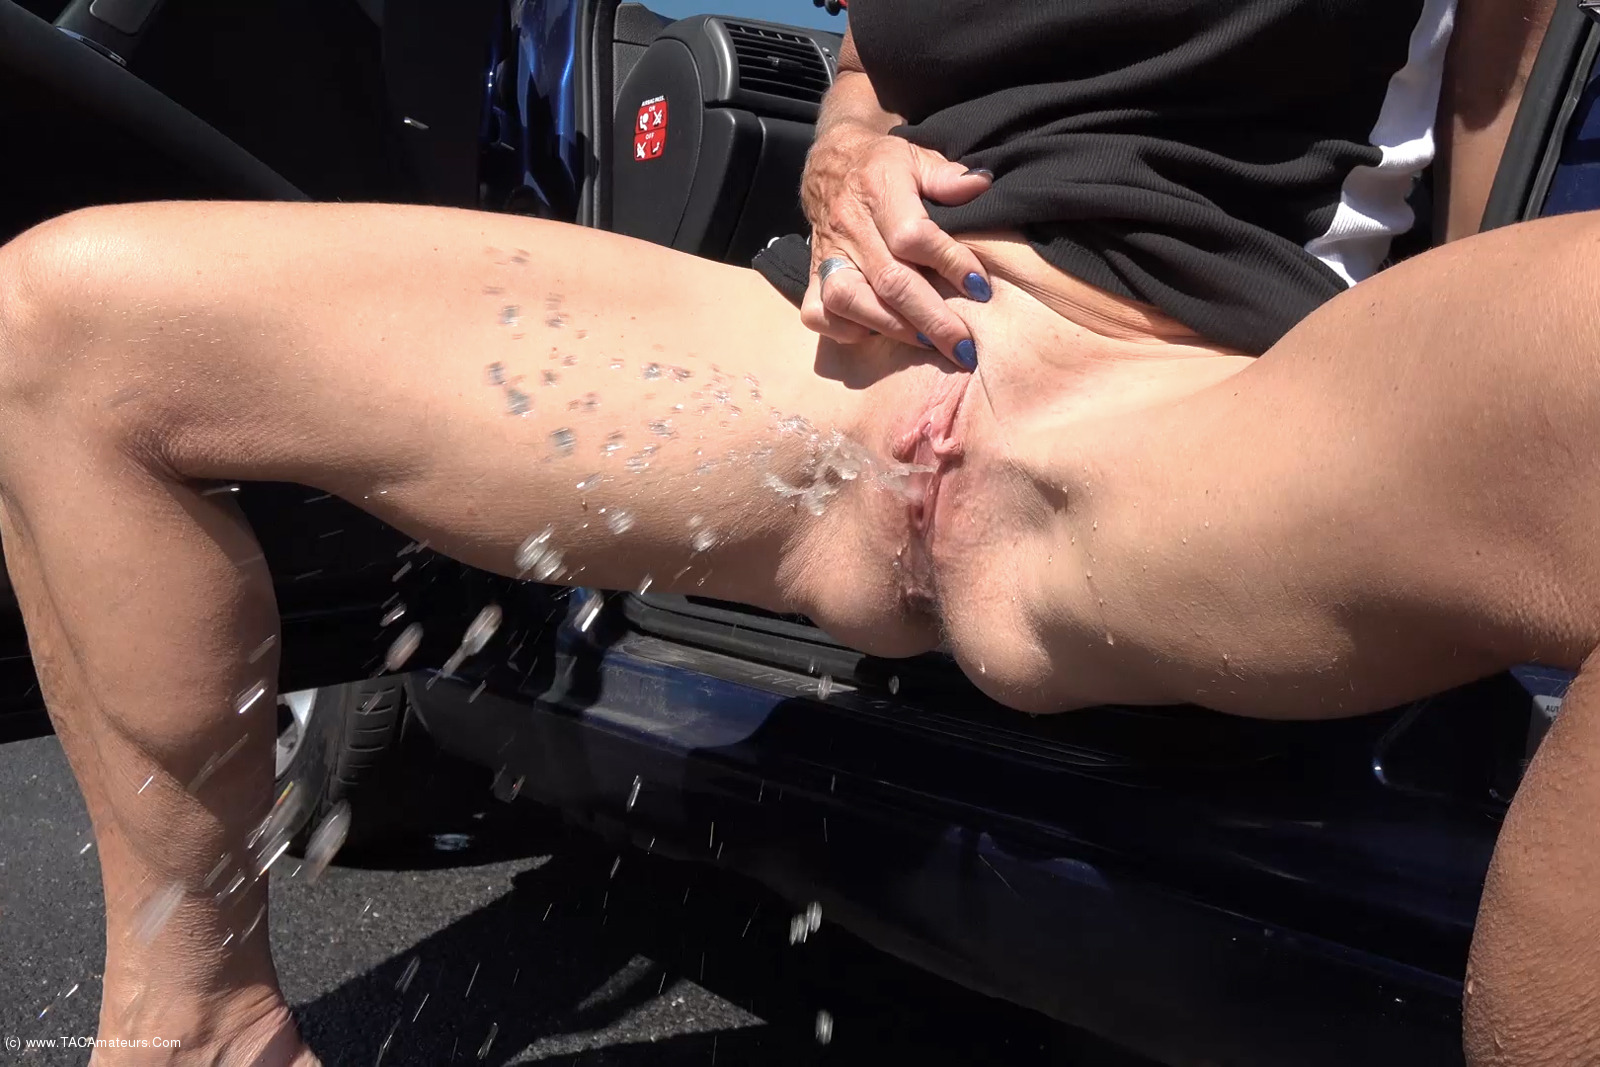 MollyMILF - Pissing For You scene 1